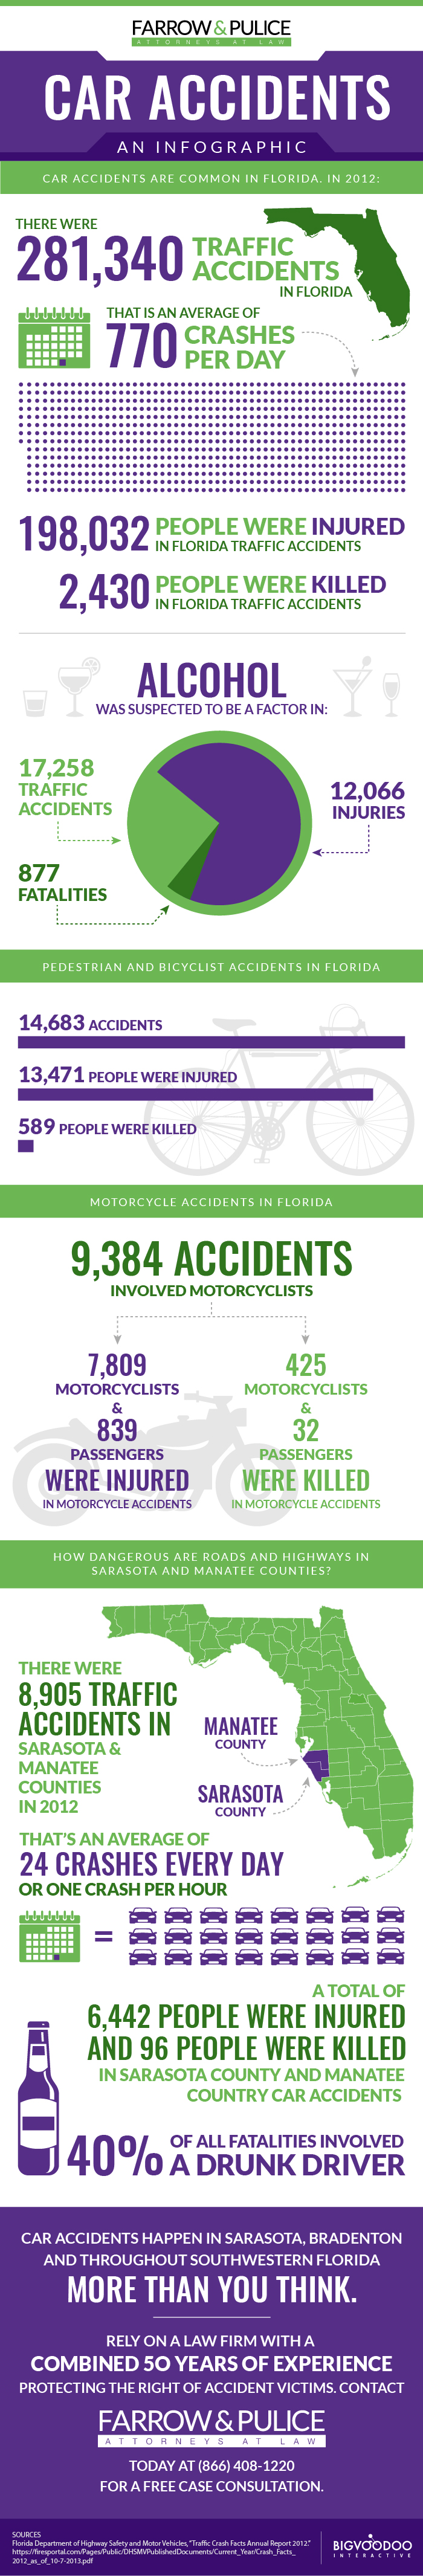 Florida Car Accident Infographic